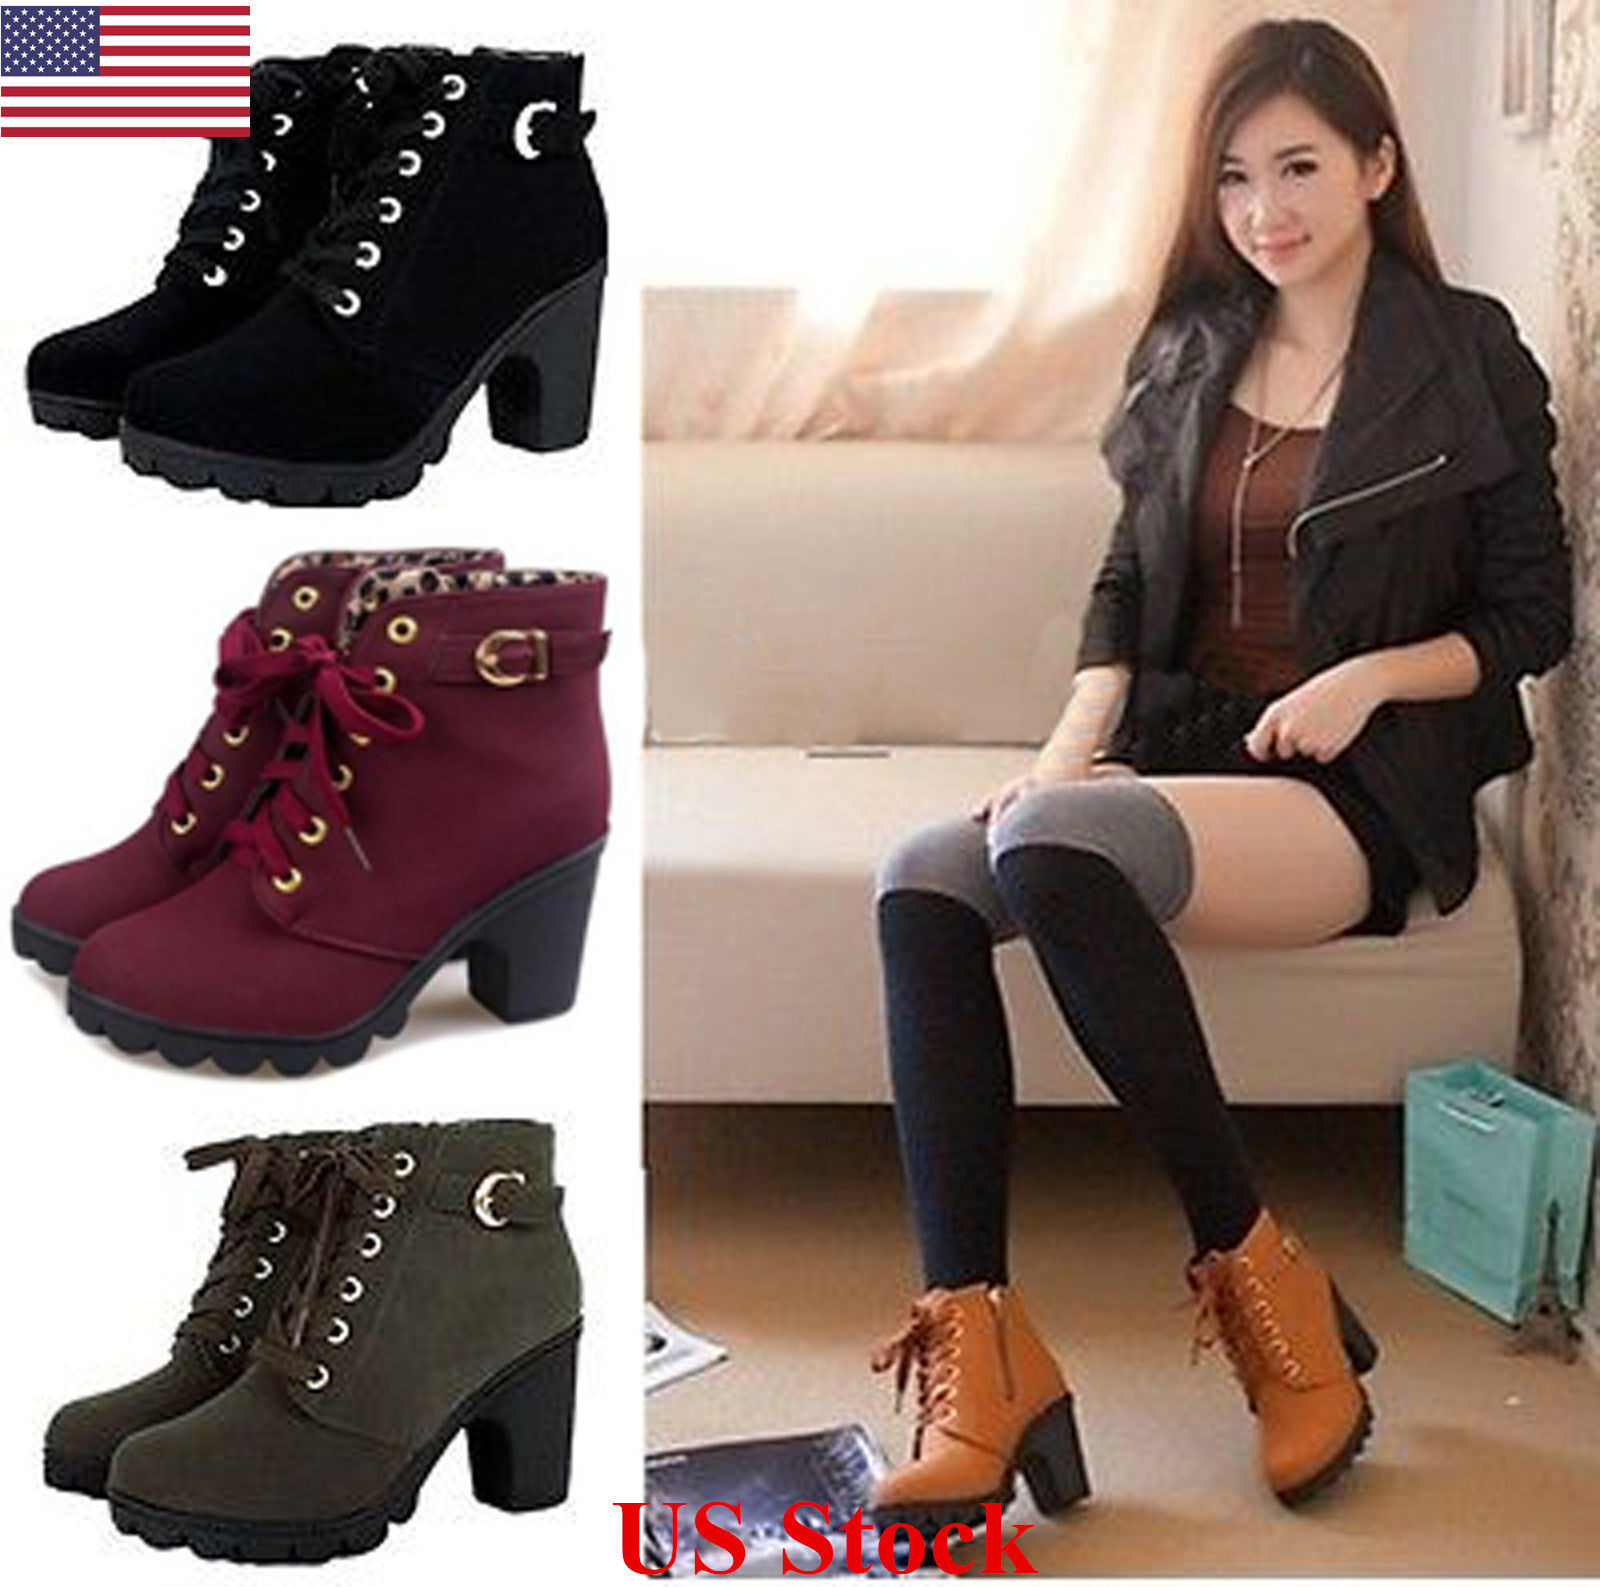 Boots - US New Womens Ladies Platform PU High Heel Ankle Boots Lace Up Punk Buckle Shoes